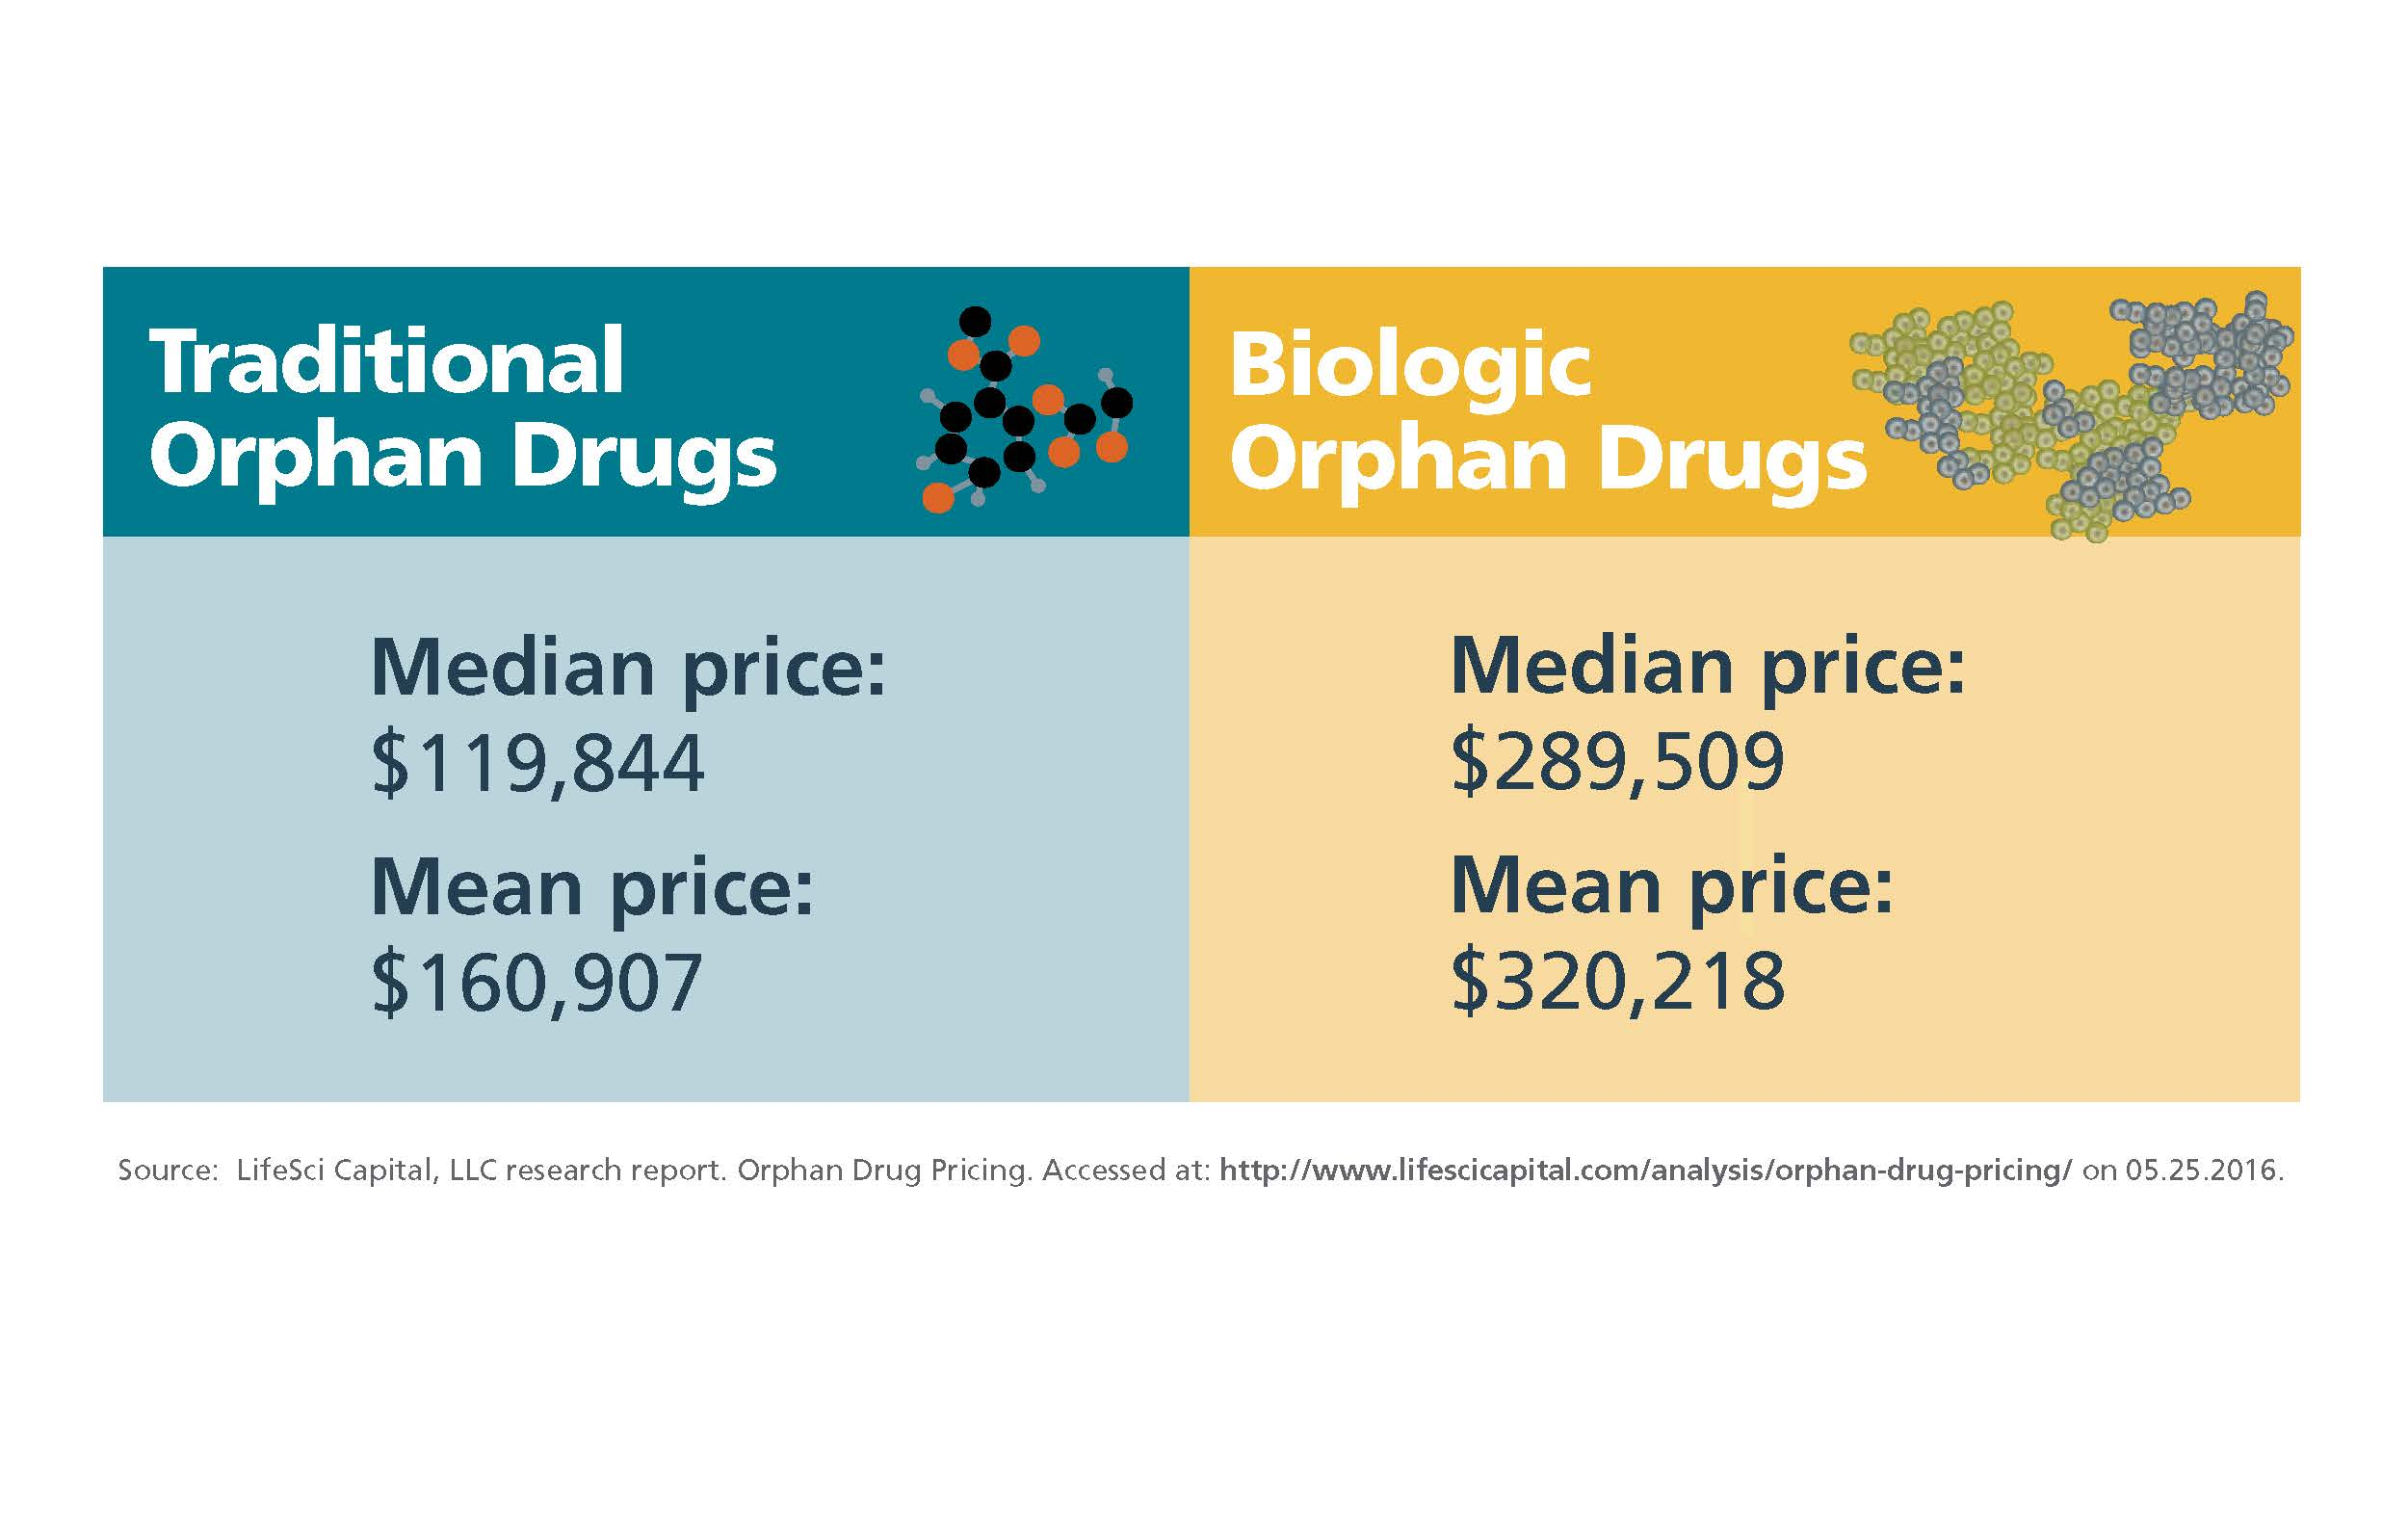 Graphic comparing prices of traditional orphan drugs and biologic orphan drugs